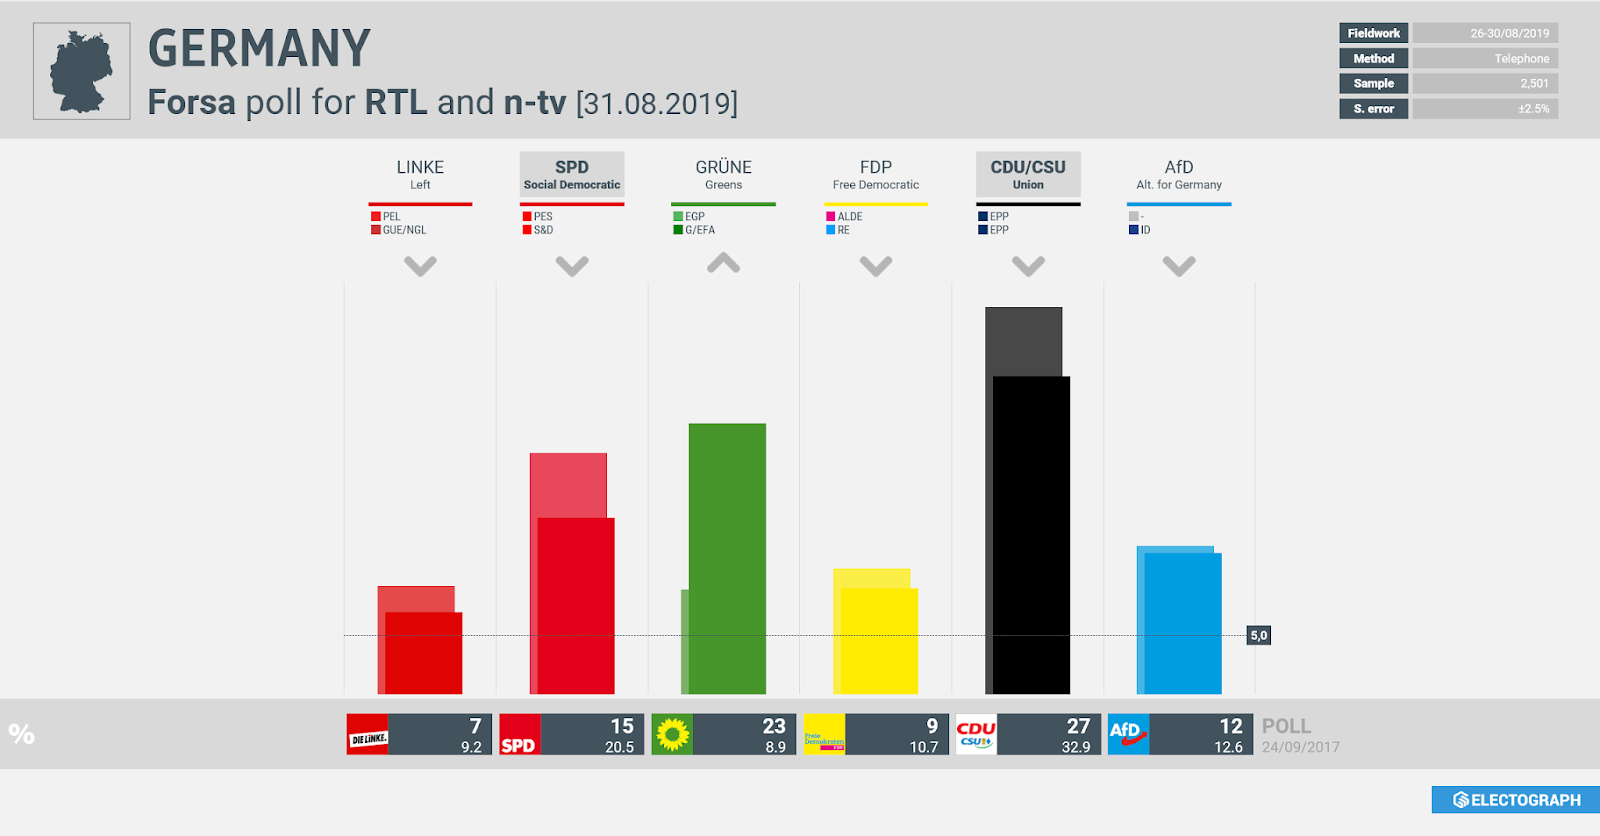 GERMANY: Forsa poll chart for RTL and n-tv, 31 August 2019